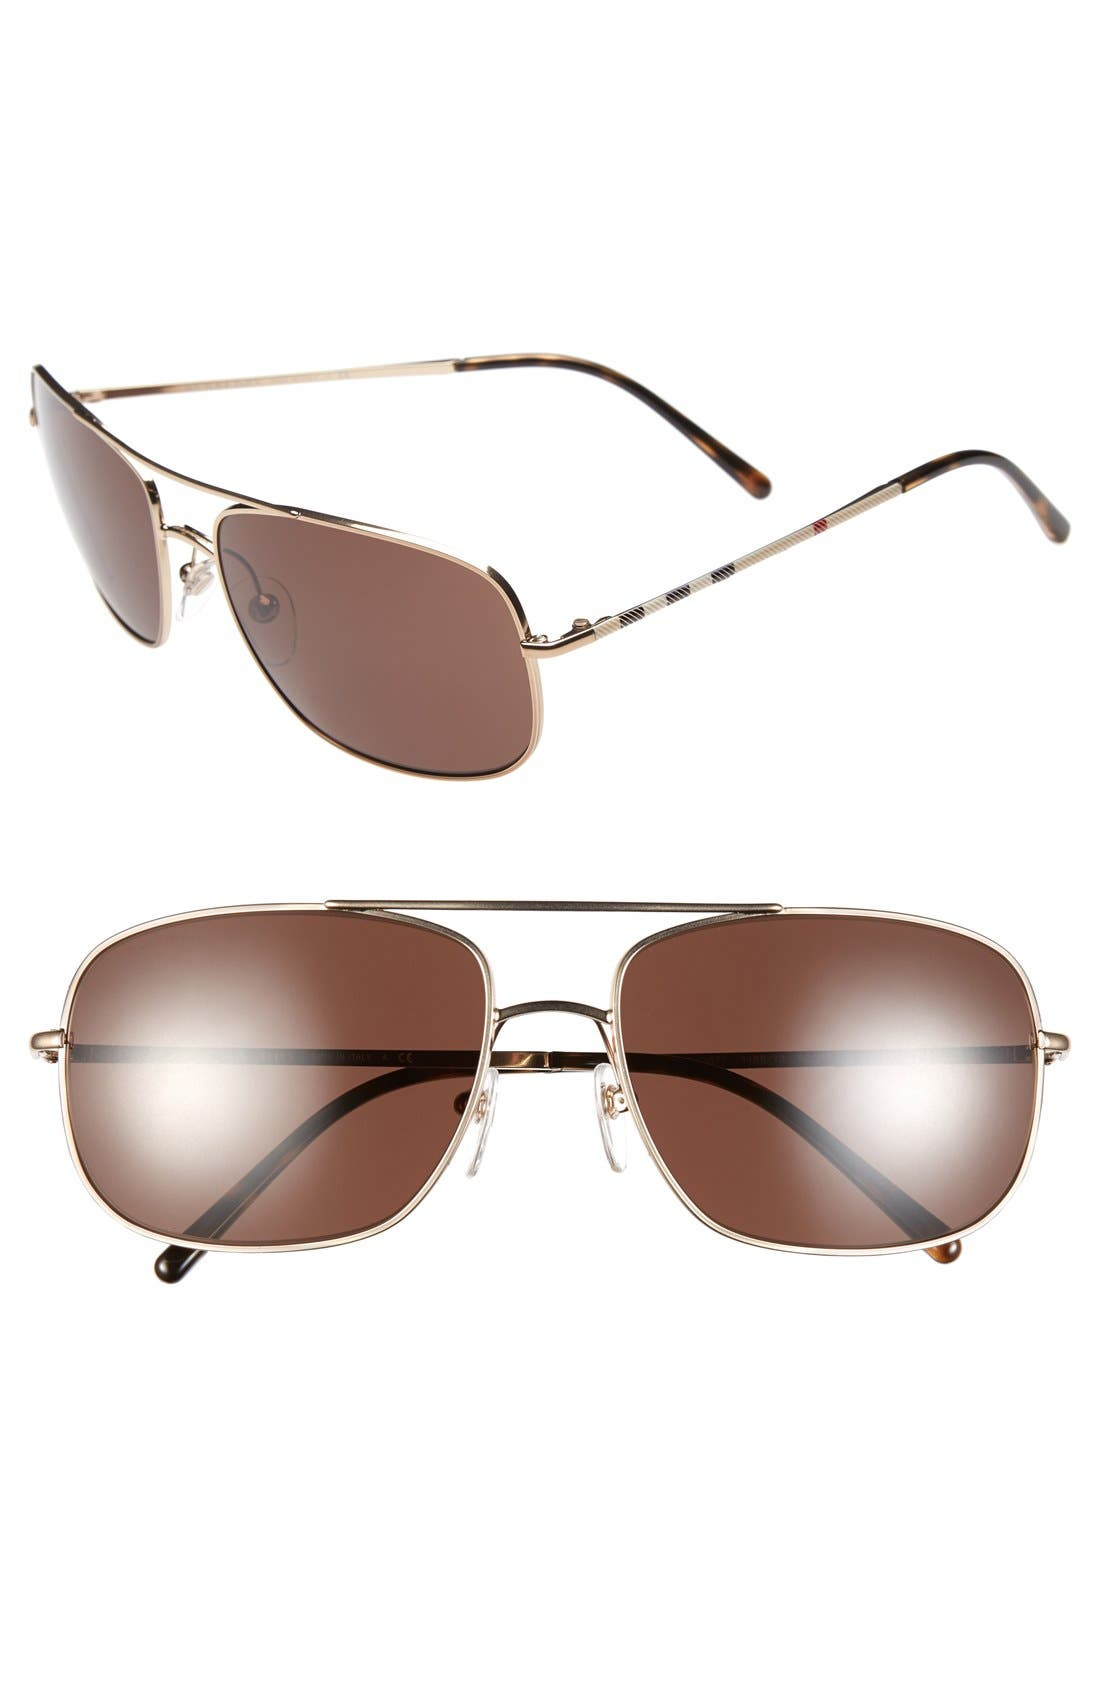 Alternate Image 1 Selected - Burberry 60mm Aviator Sunglasses